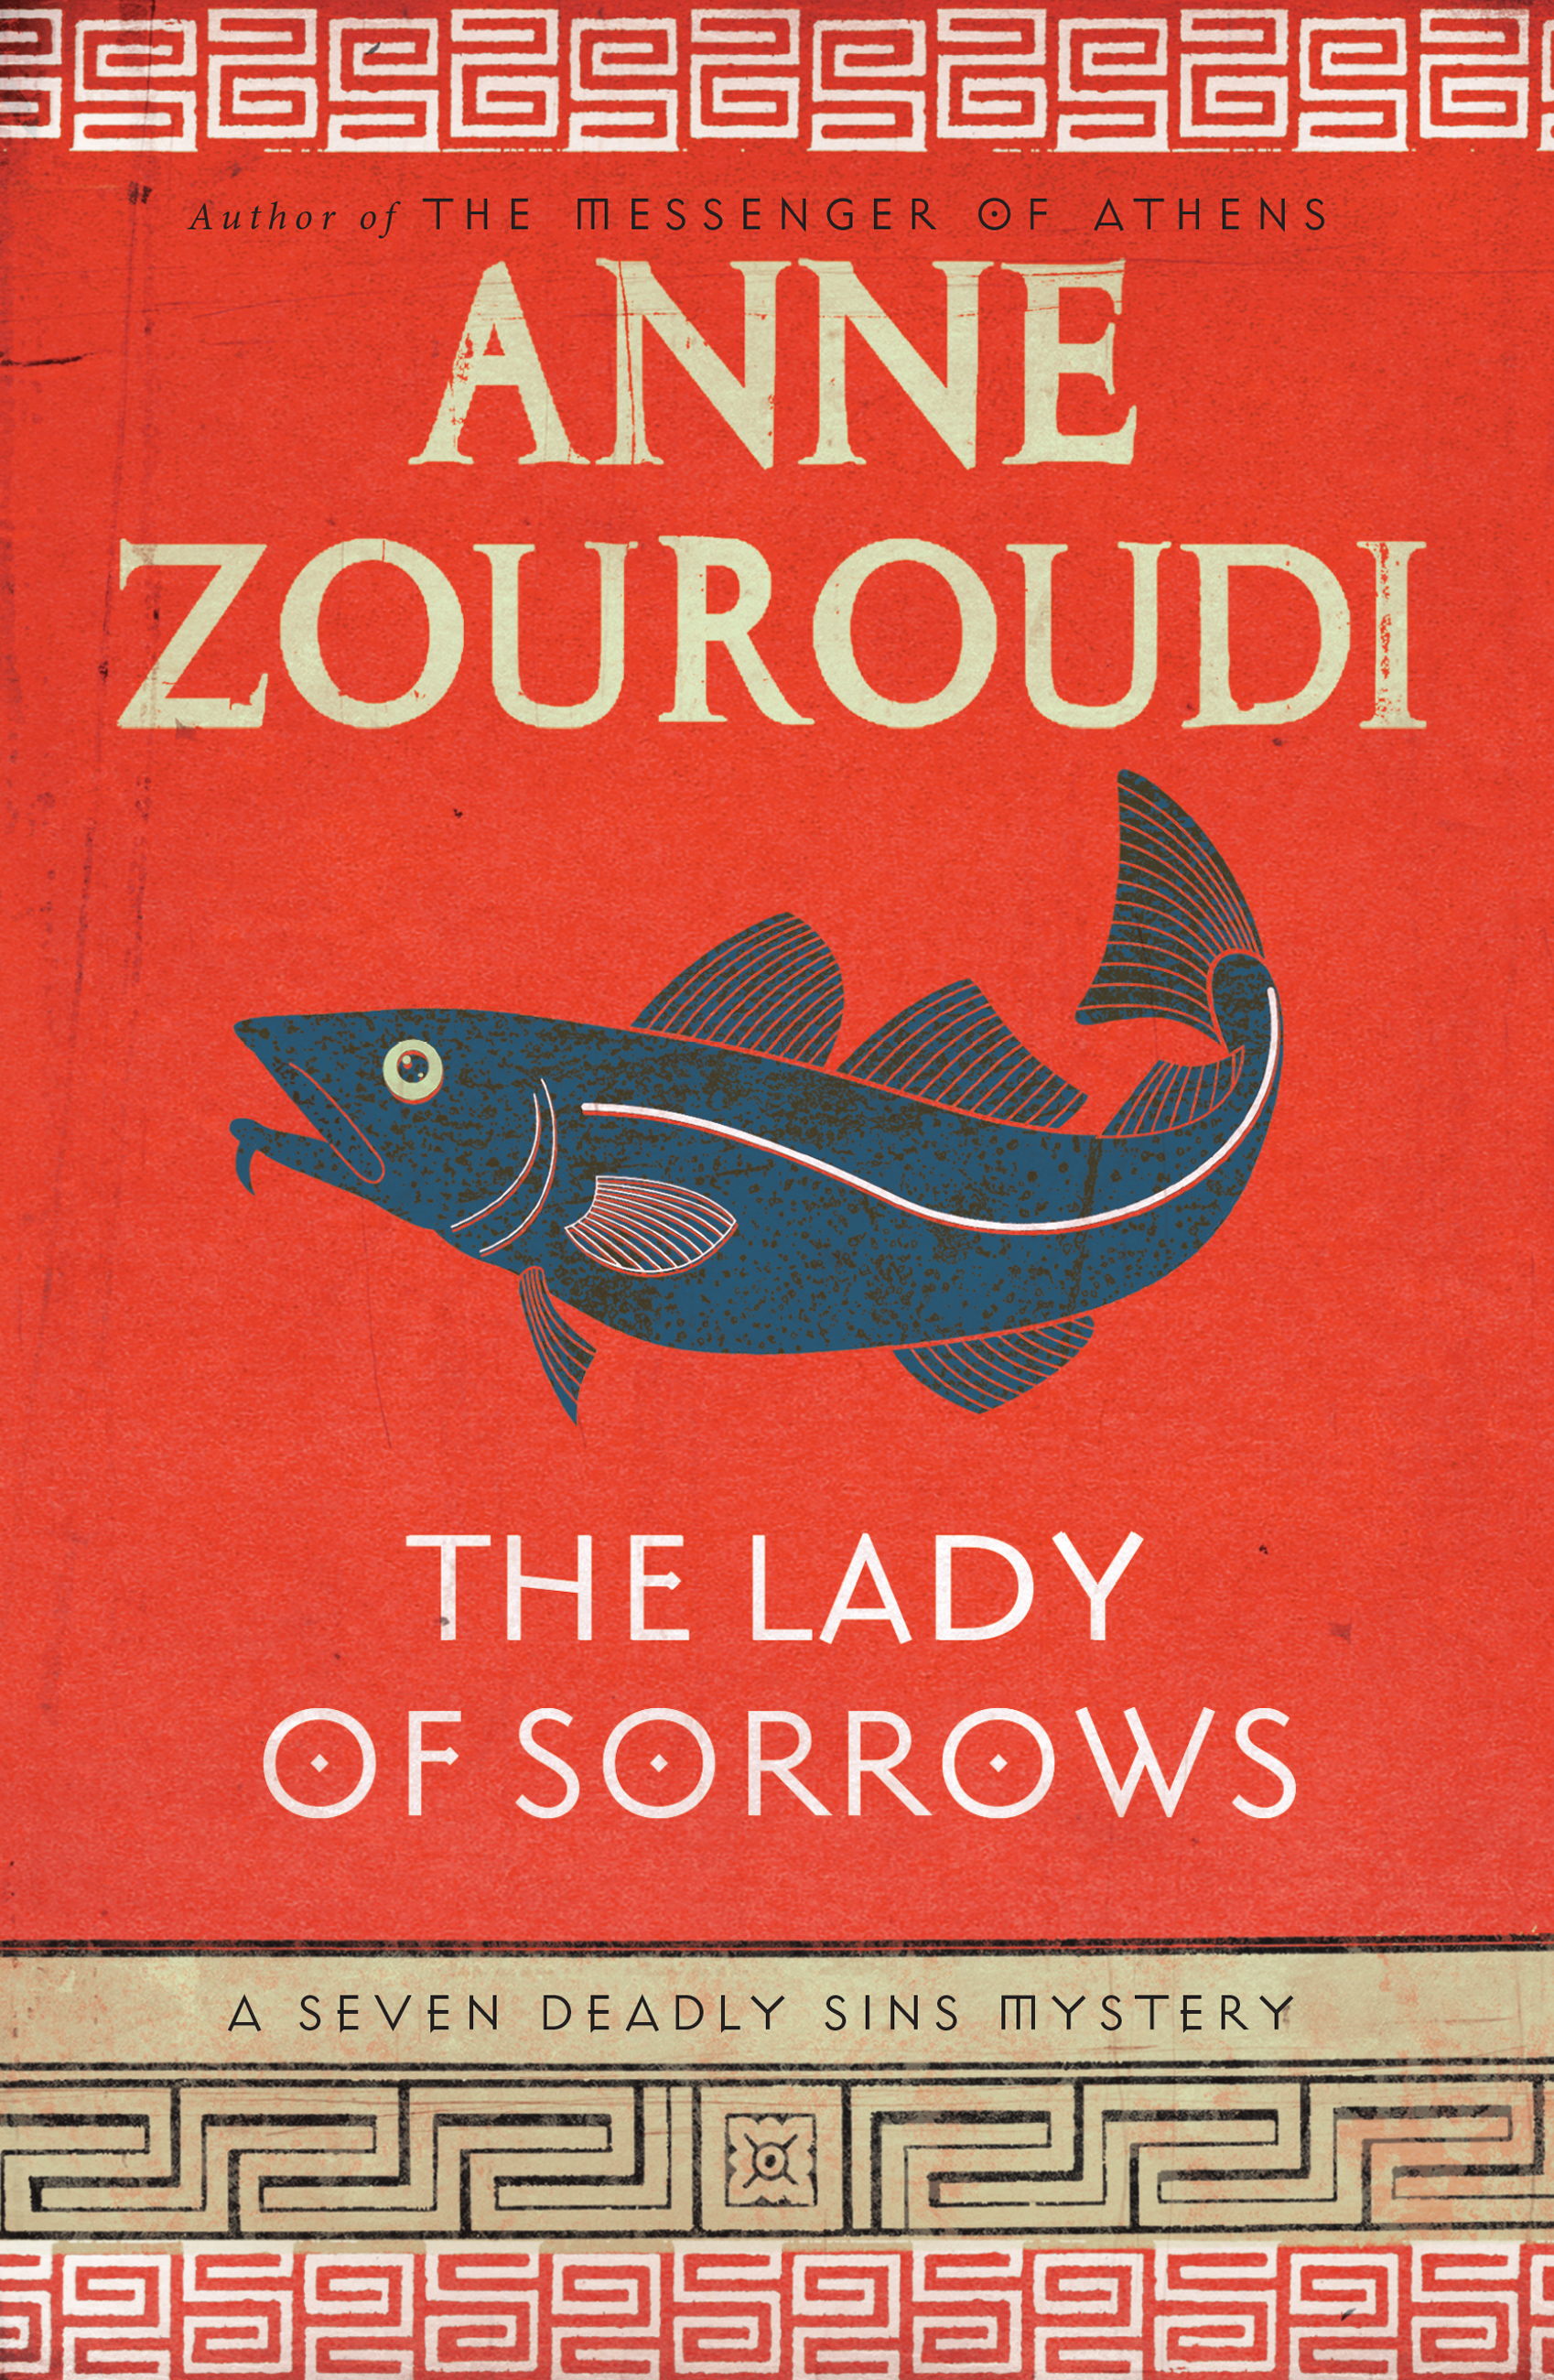 The Lady of Sorrows